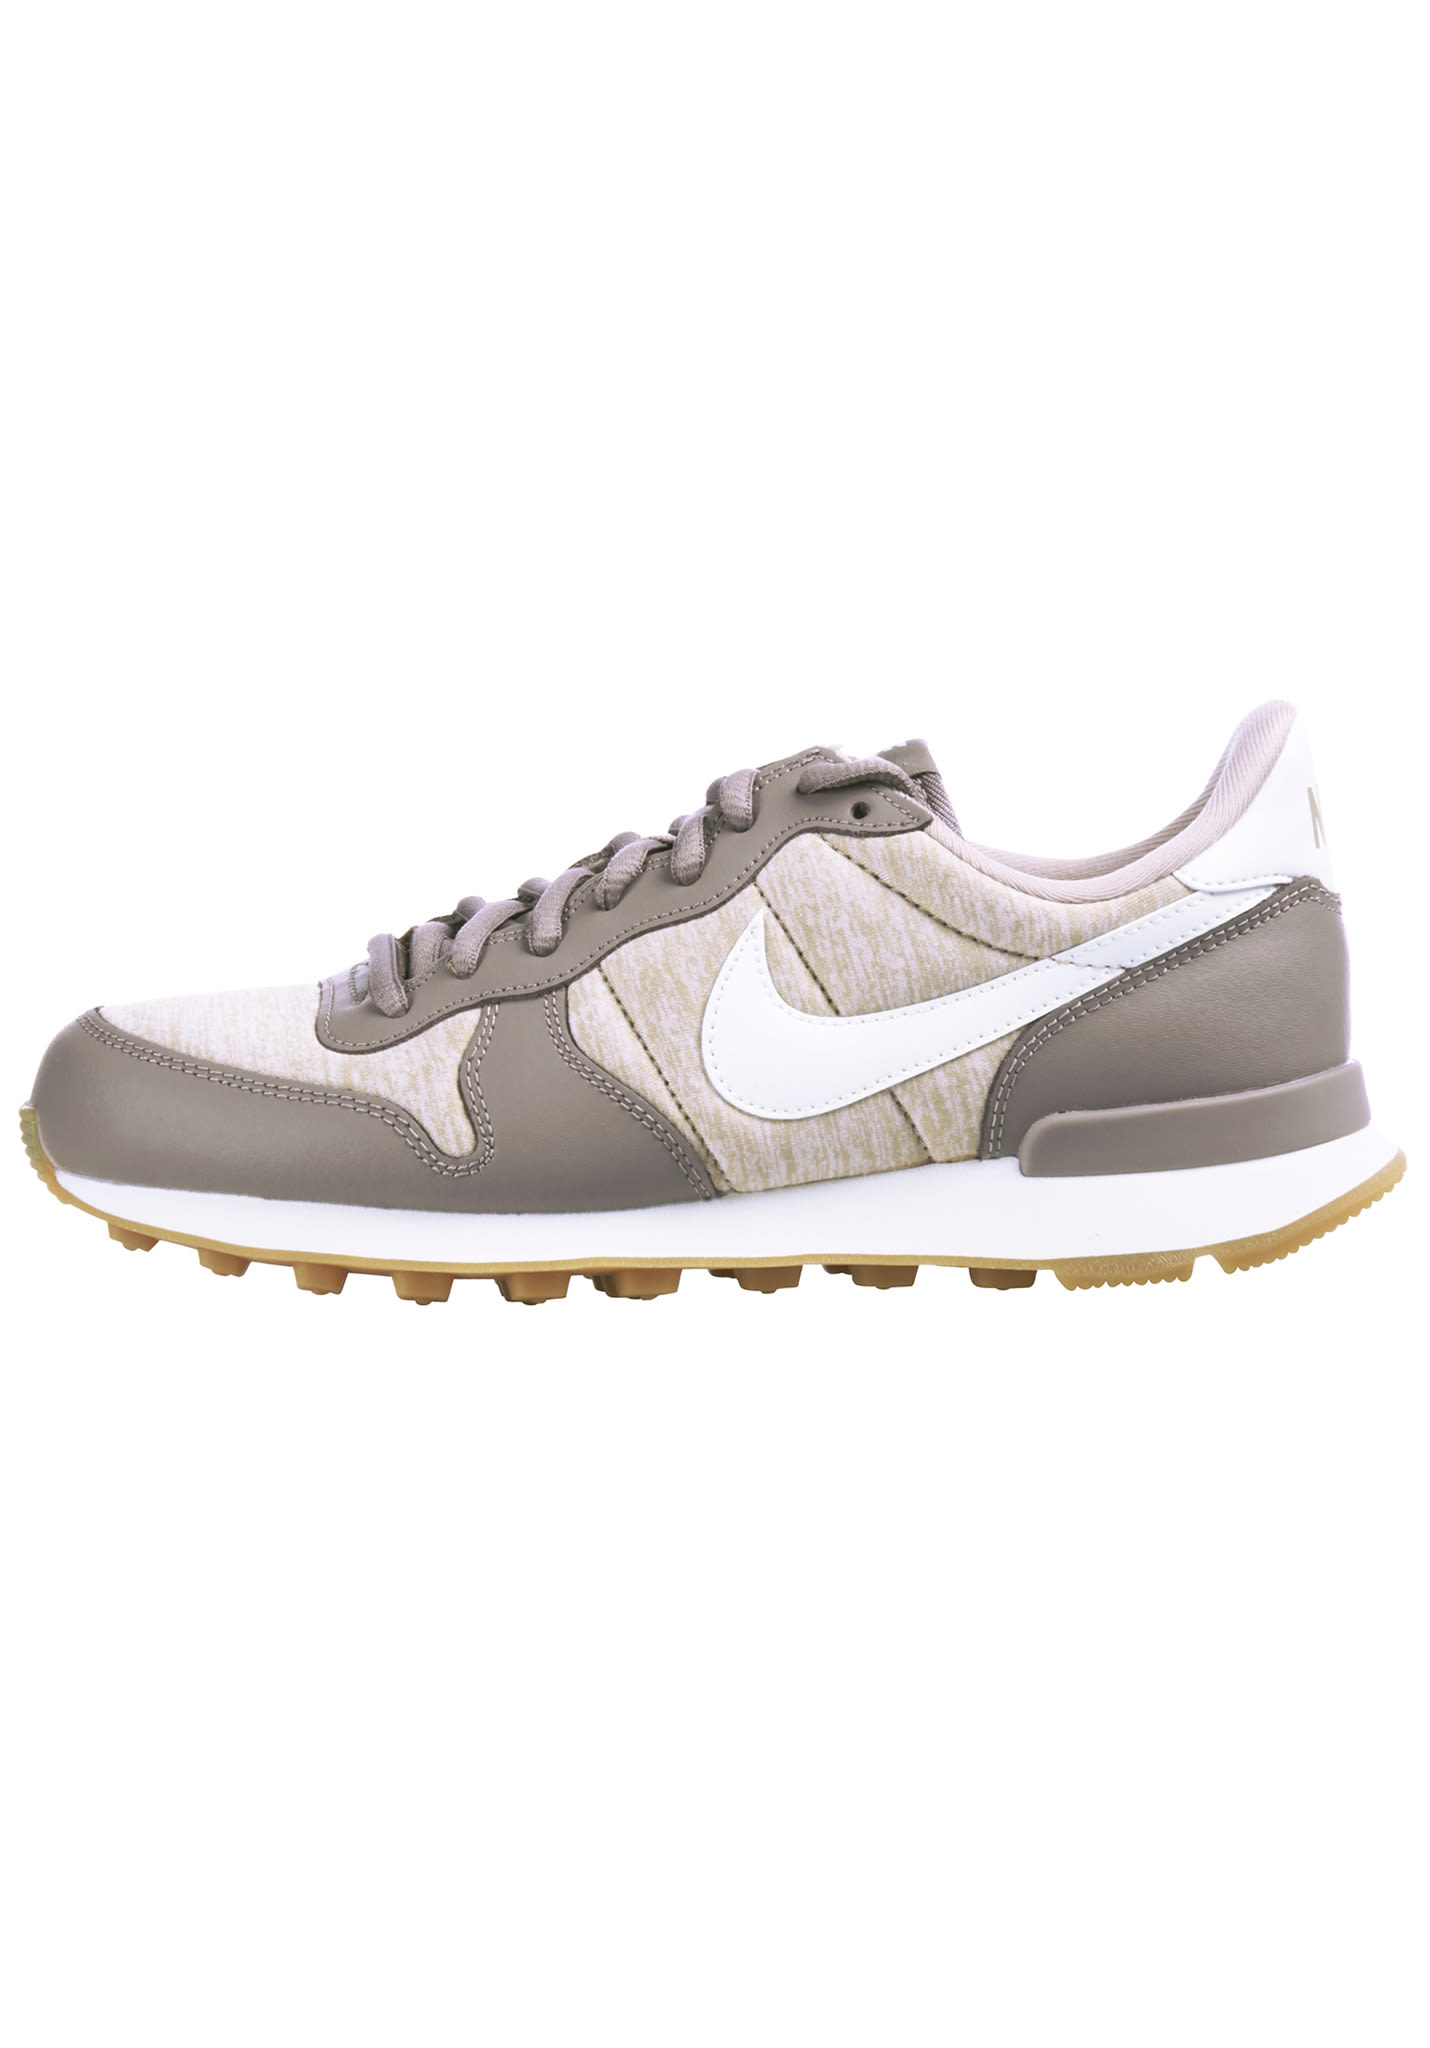 low priced f0963 d89b6 NIKE SPORTSWEAR Internationalist - Sneaker für Damen - Grau